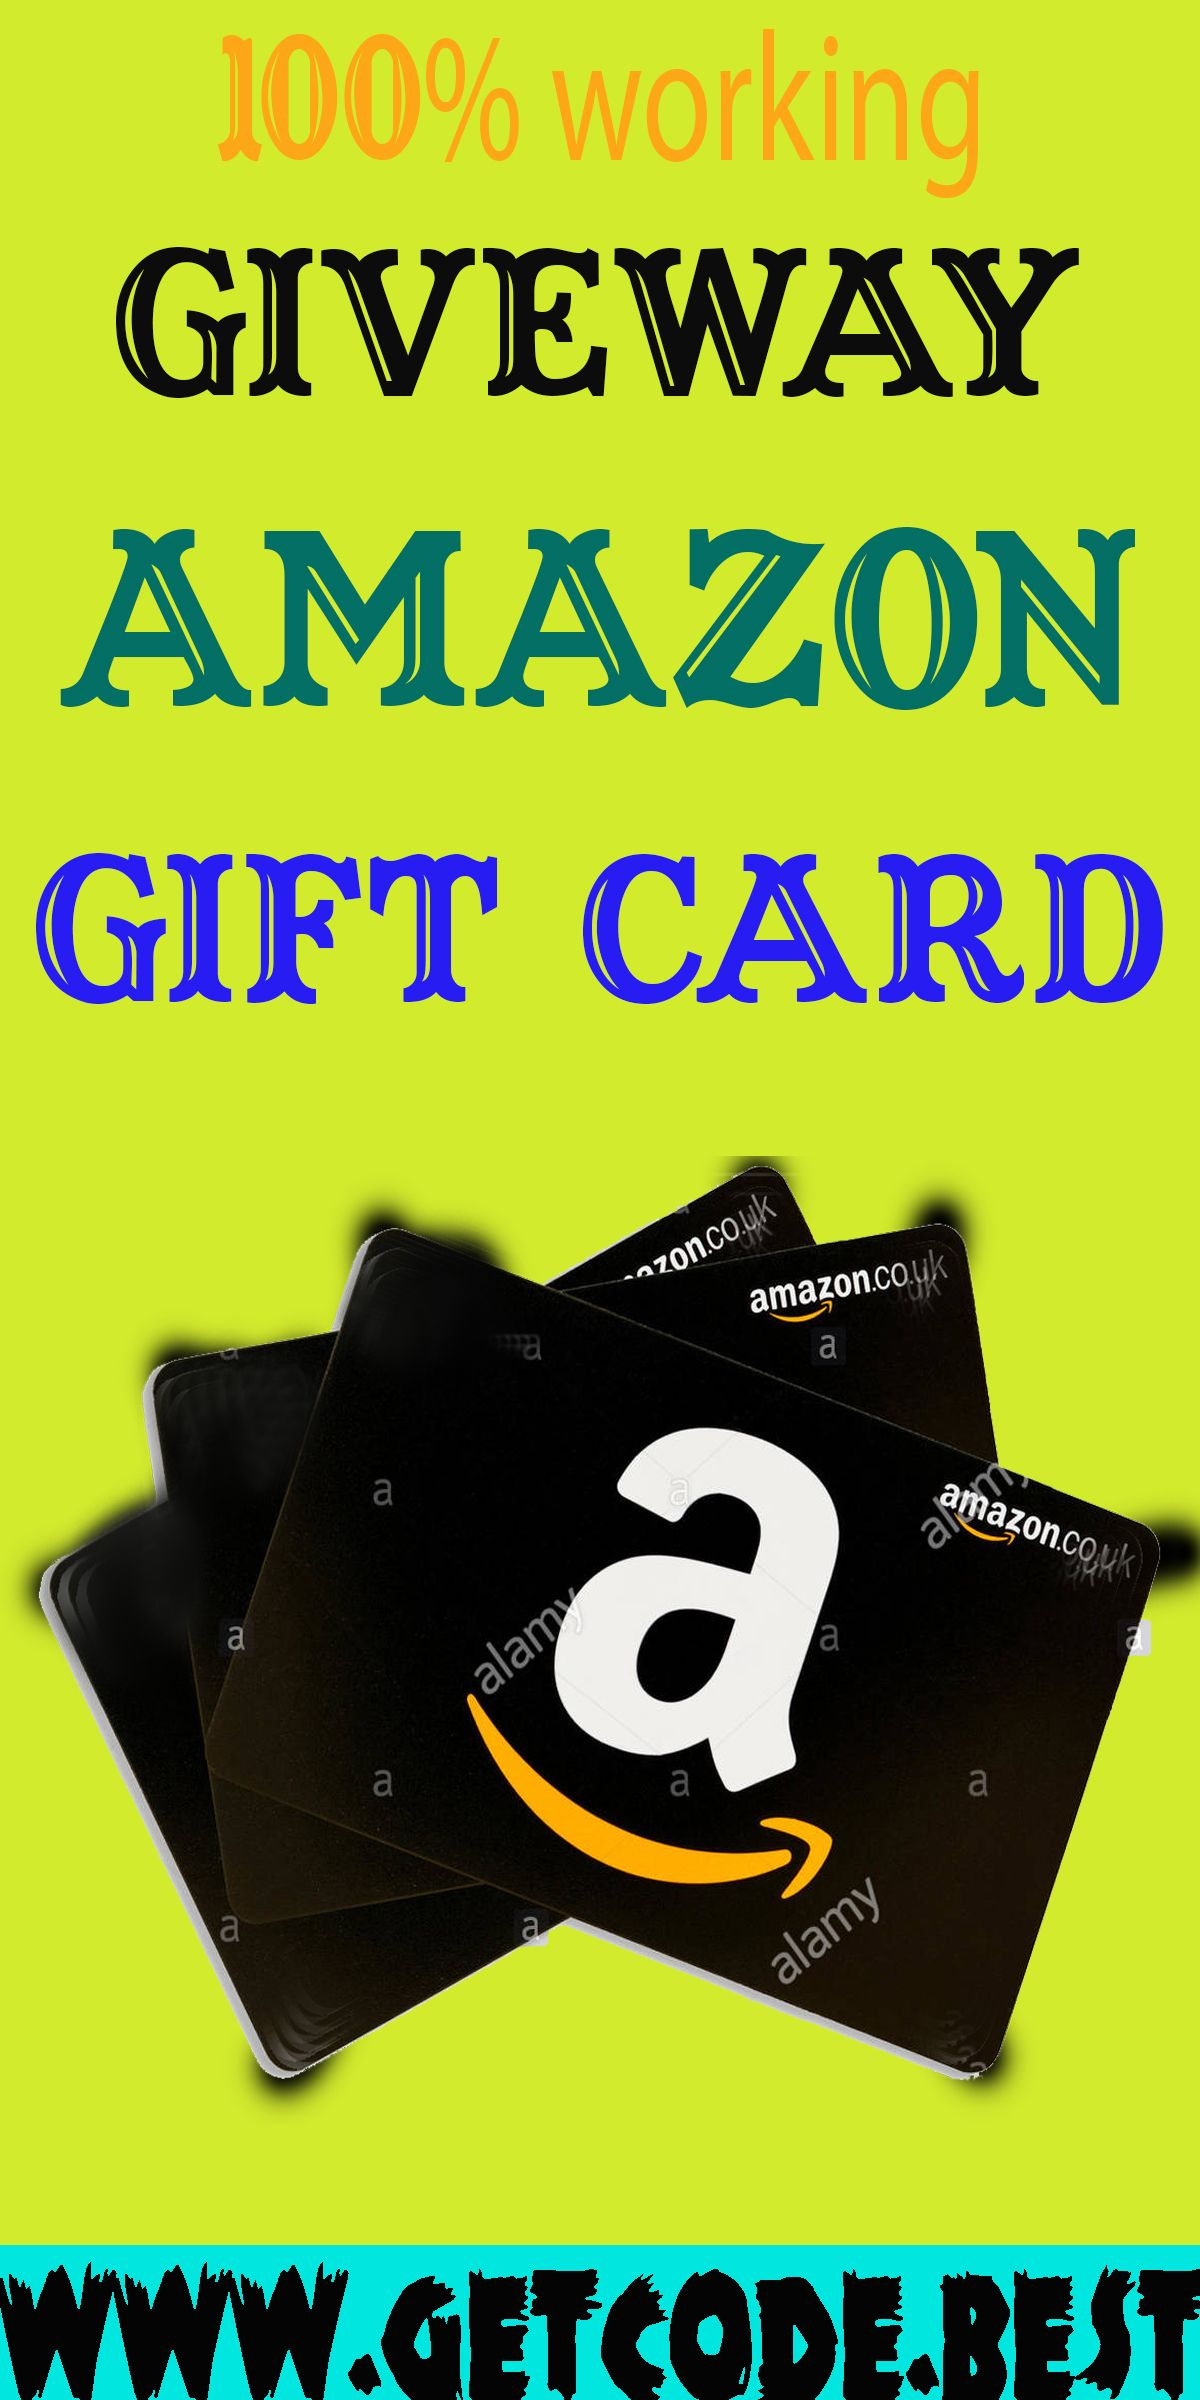 Get a 800 amazon gift card completely free its